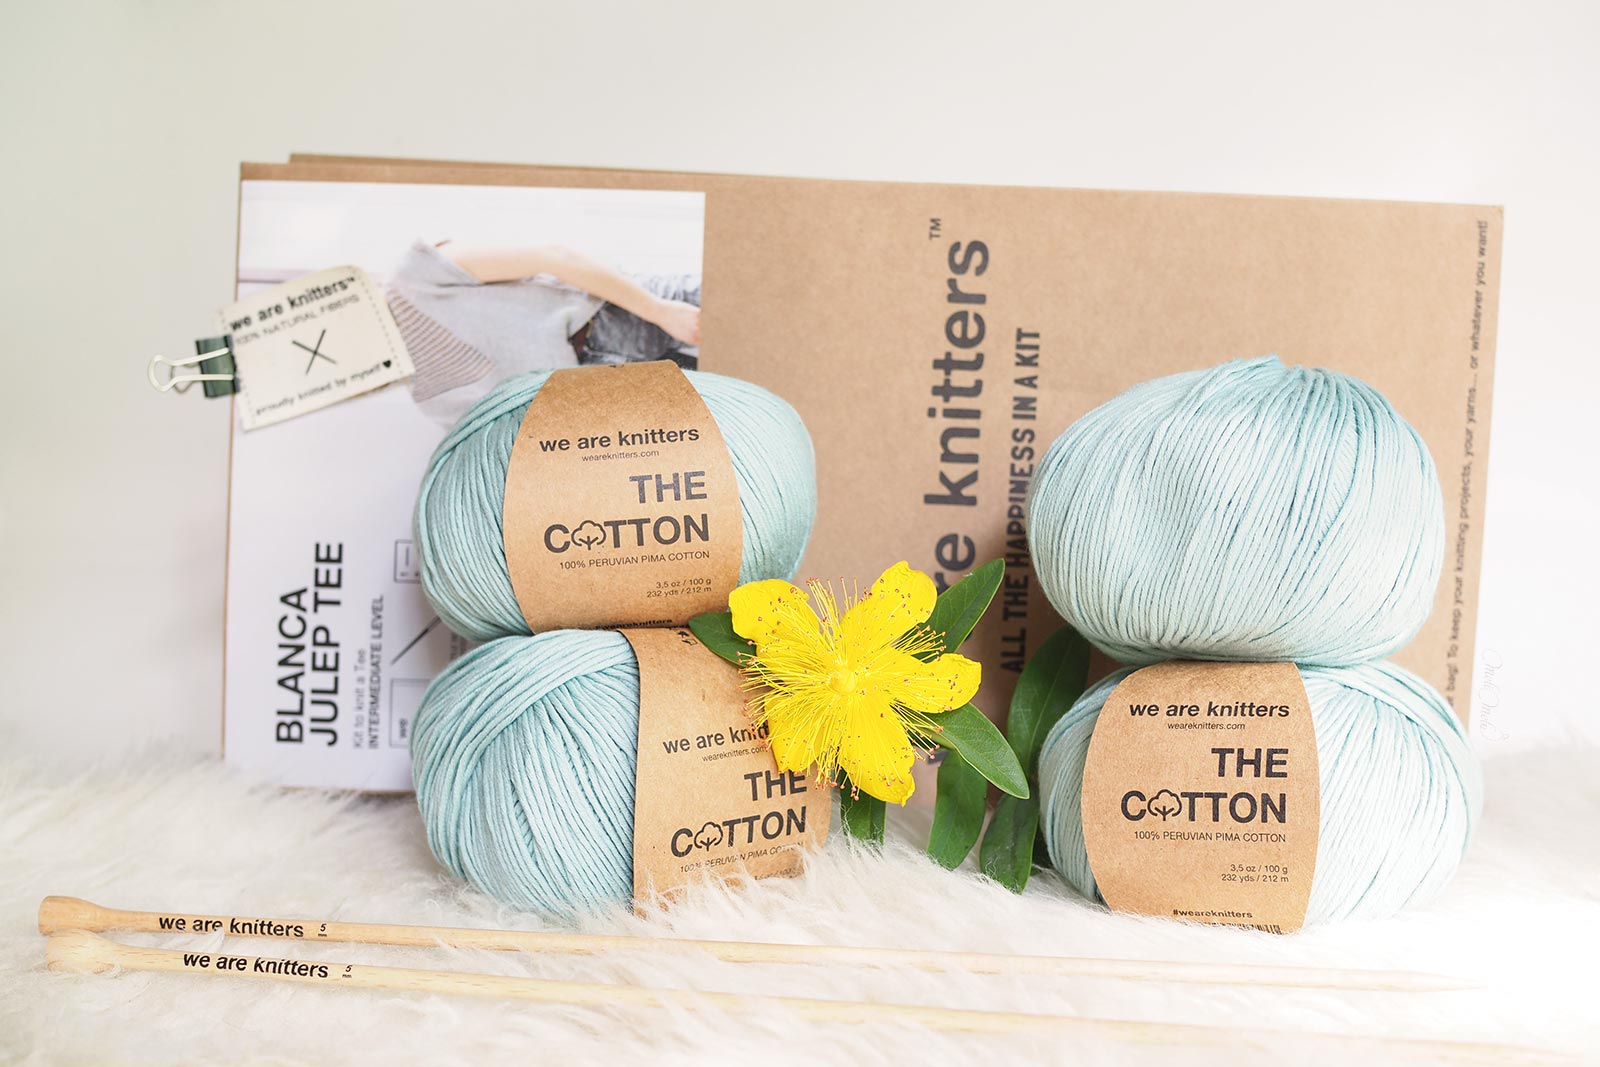 jeu concours kit tricot knit cotton pima Blanca Julep Tee We Are Knitters laboutiquedemelimelo